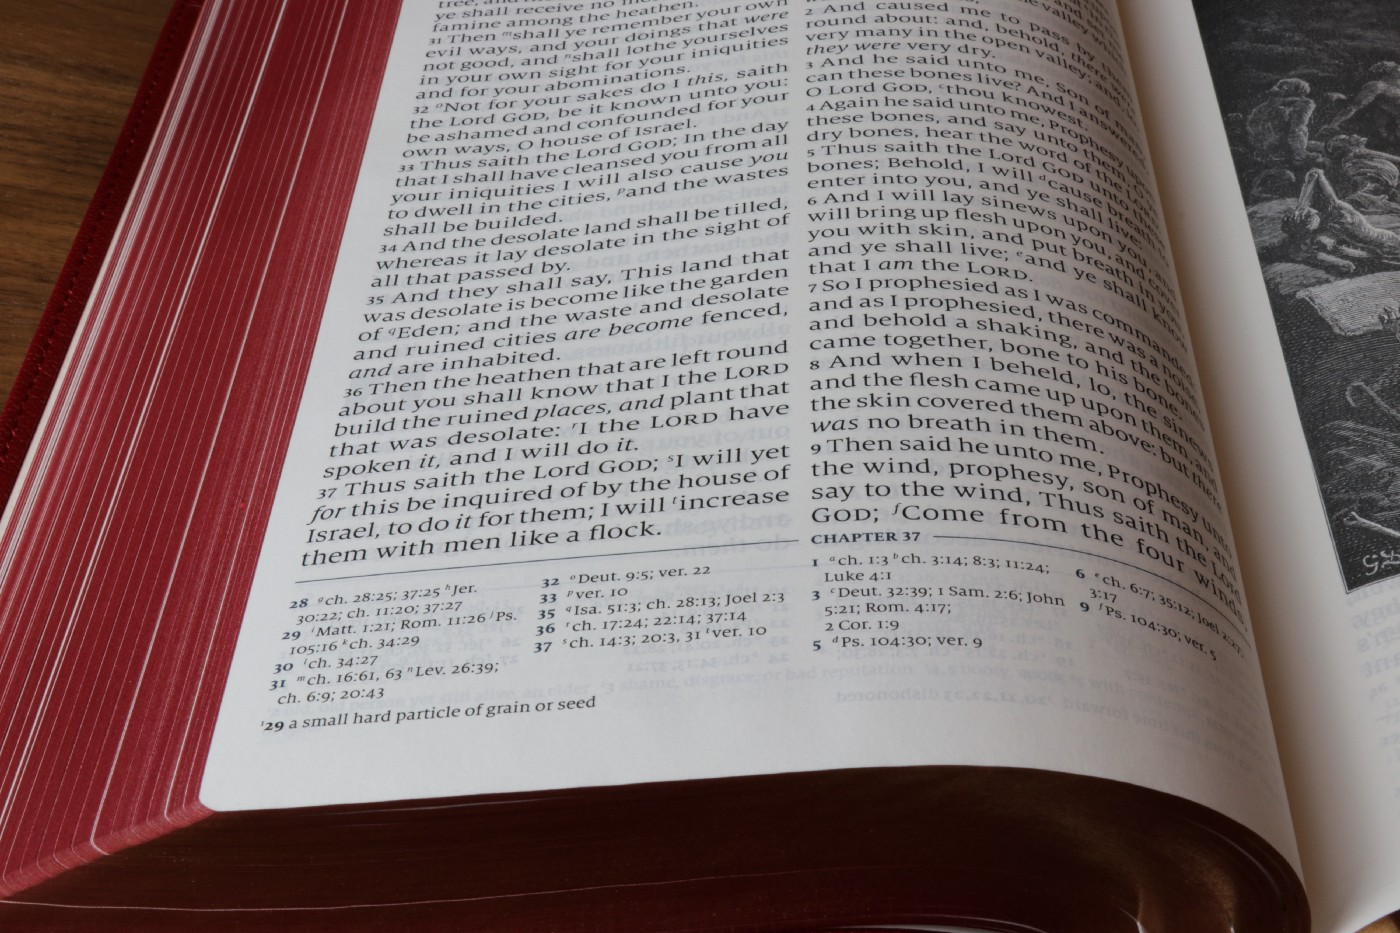 A book showing footnote citations — used for decoration only